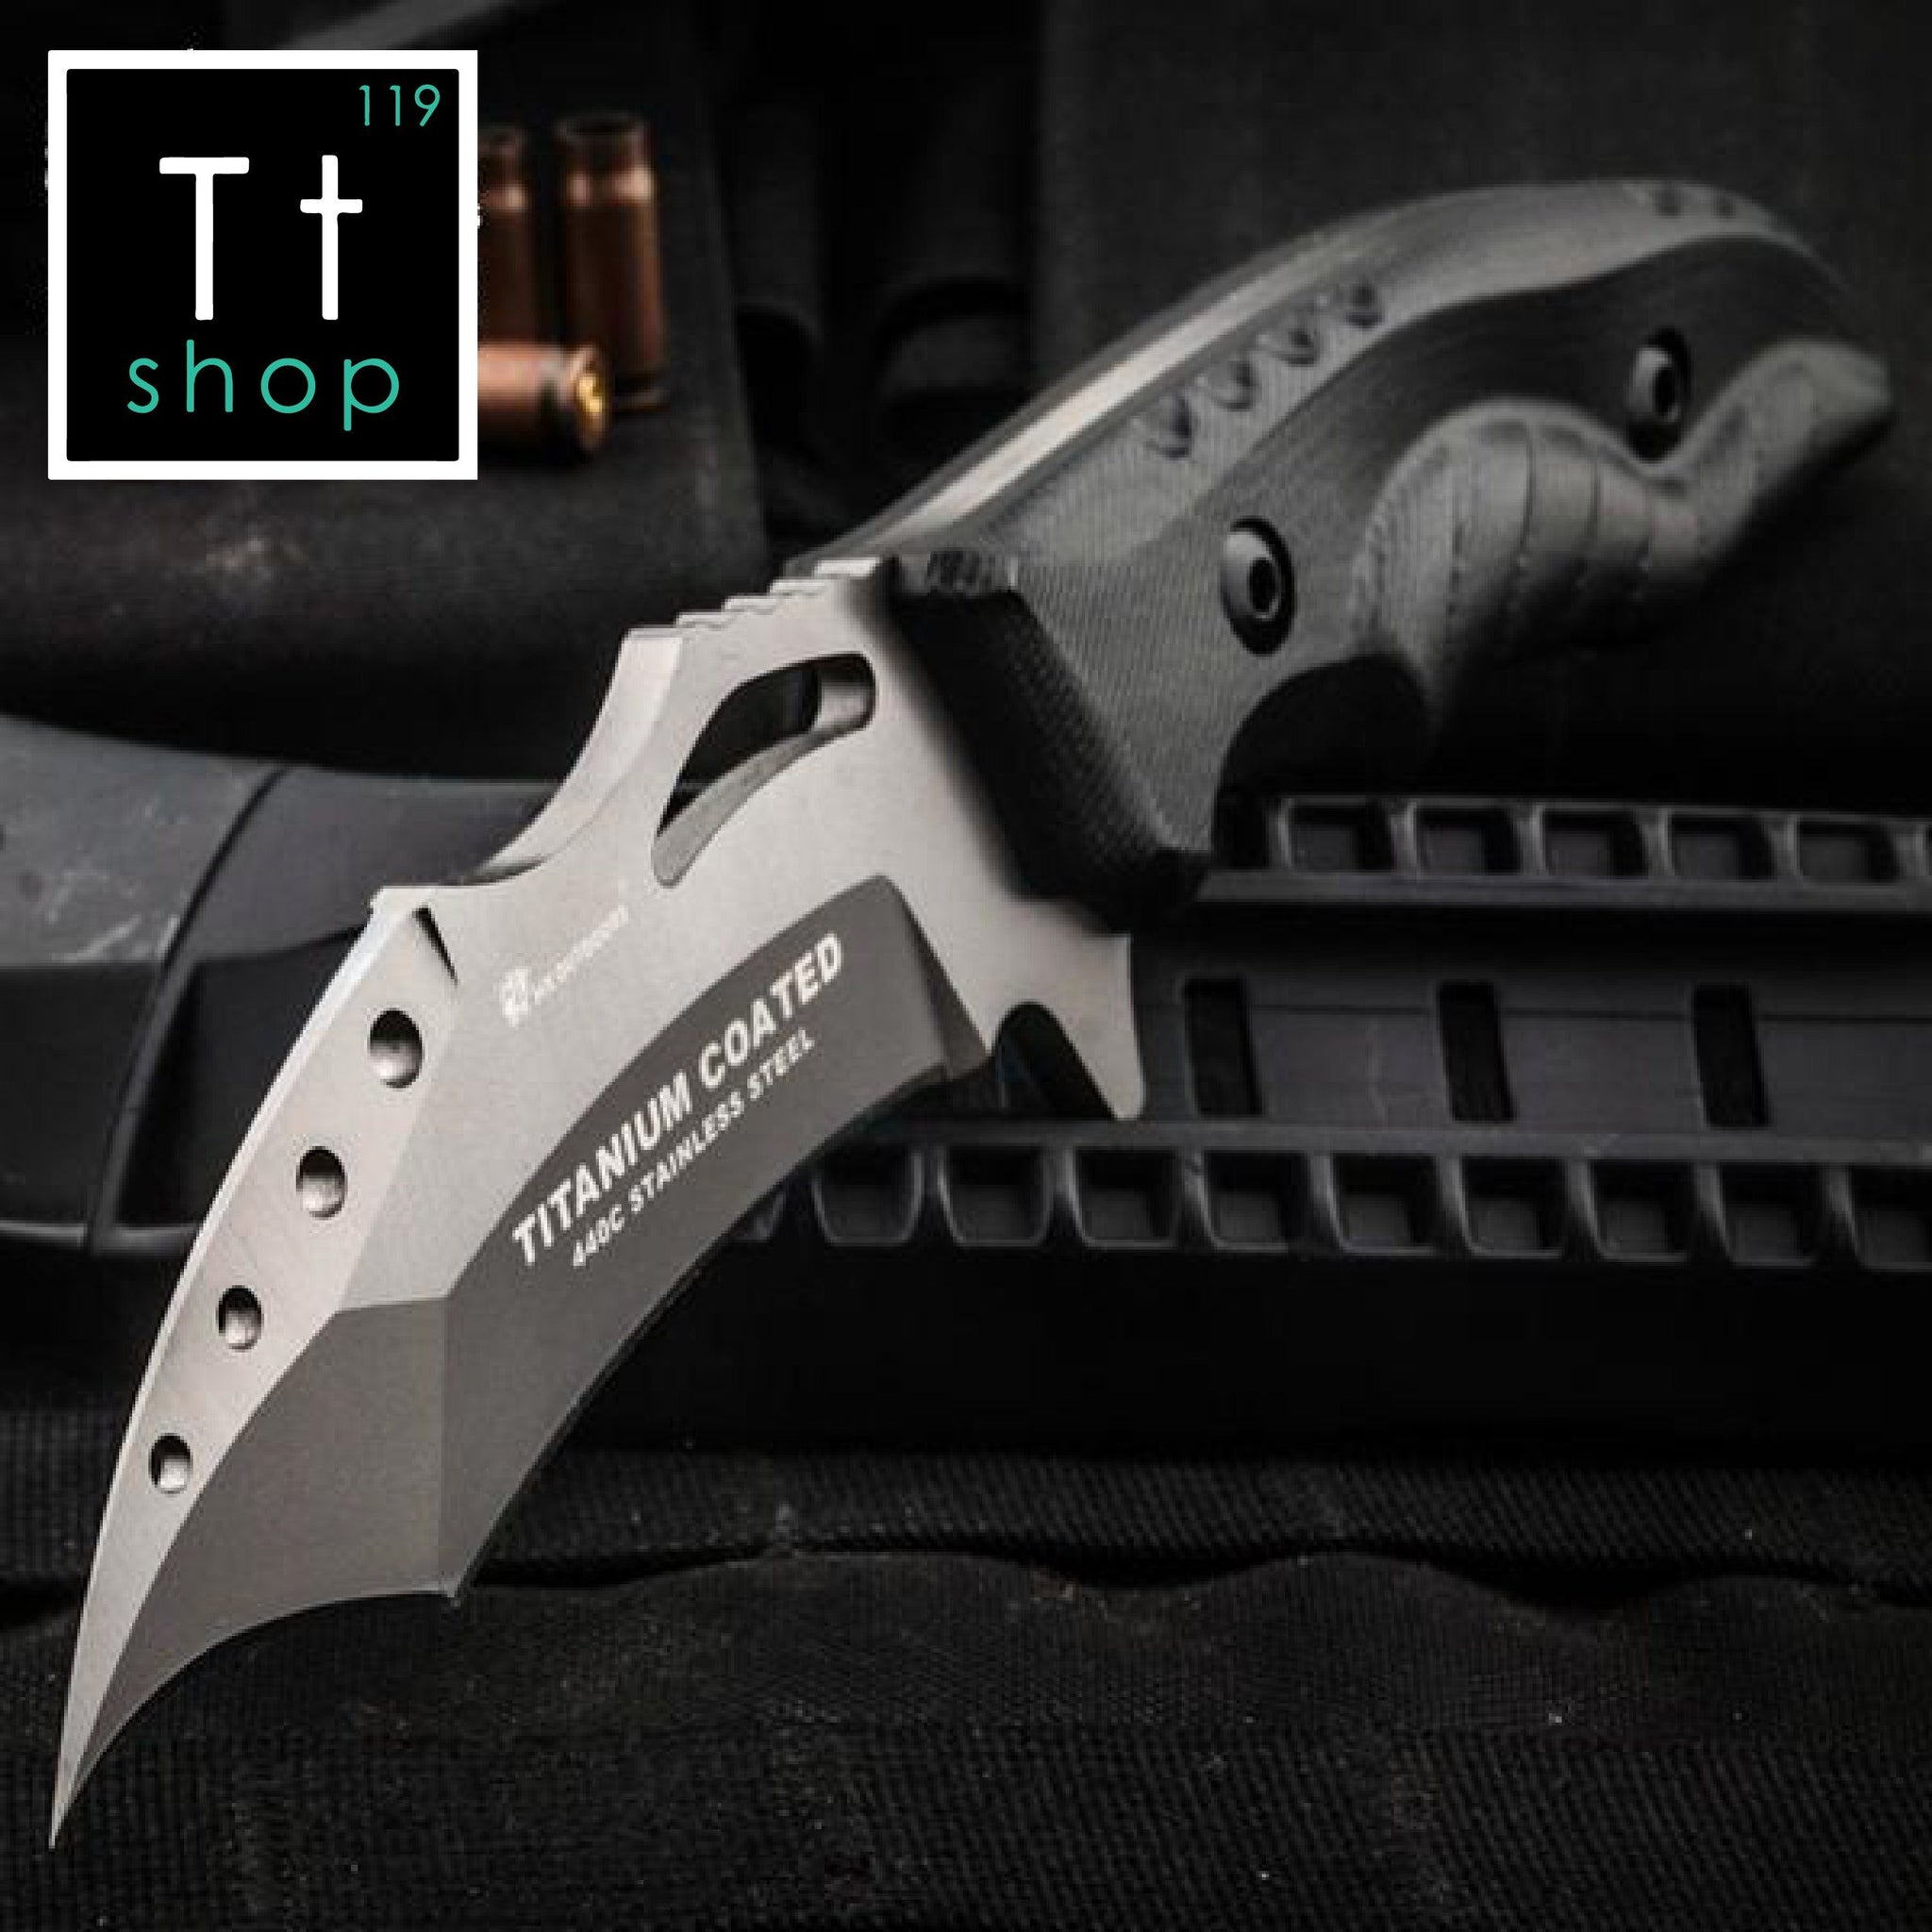 Tactical Condor Survival Knife - TopTier Shop Unique Fun Trending Gifts Hot Items Shopping tactical